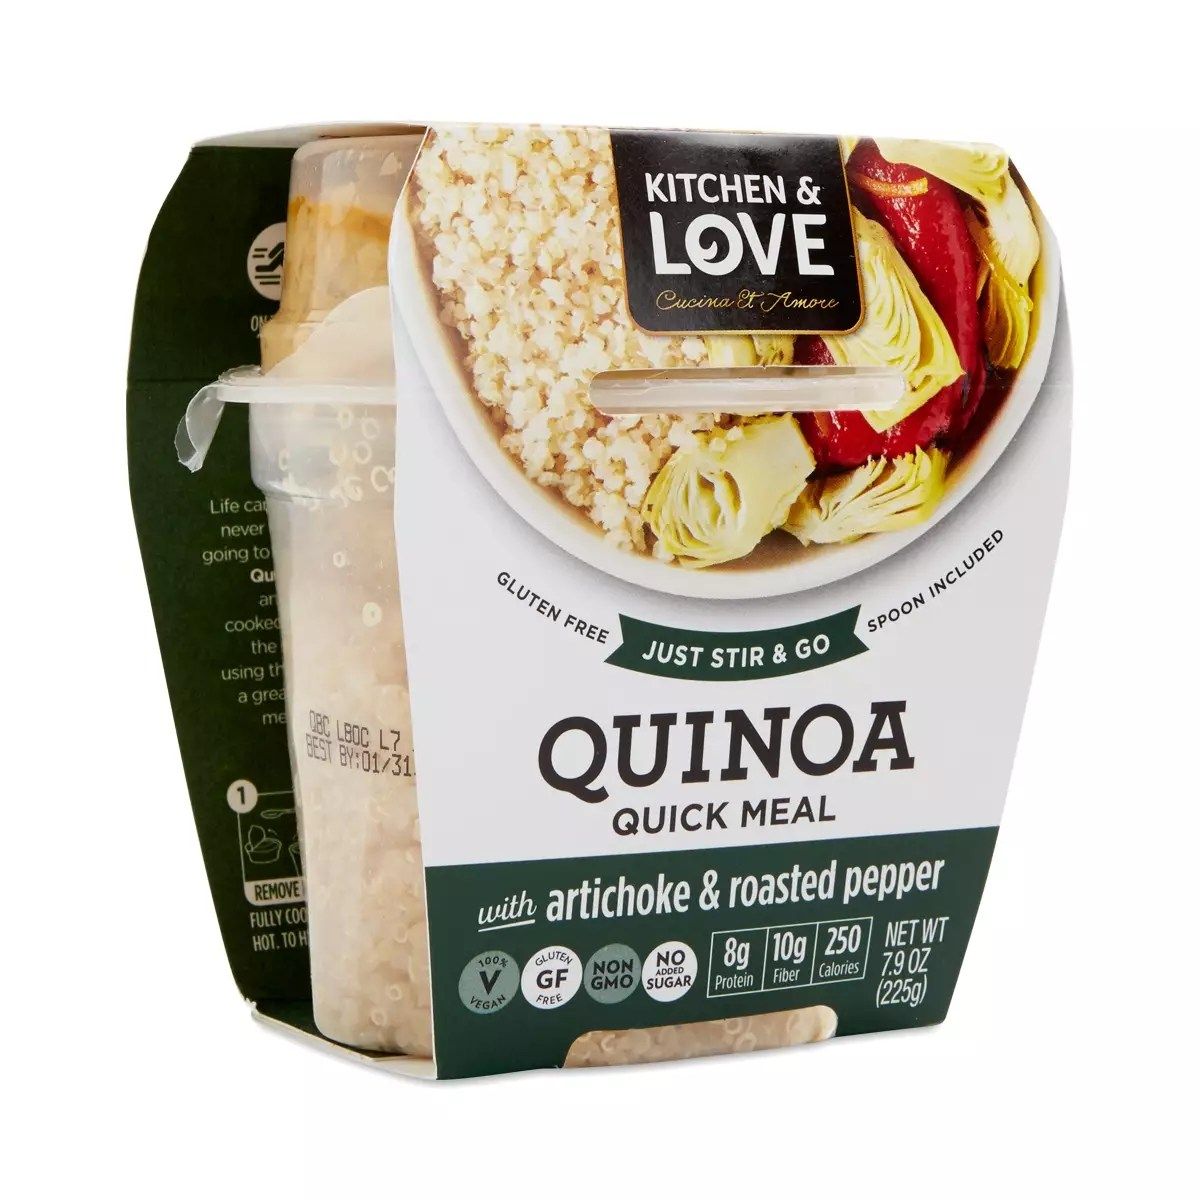 Cucina And Amore Quinoa Review Artichoke Roasted Peppers Quinoa Meal